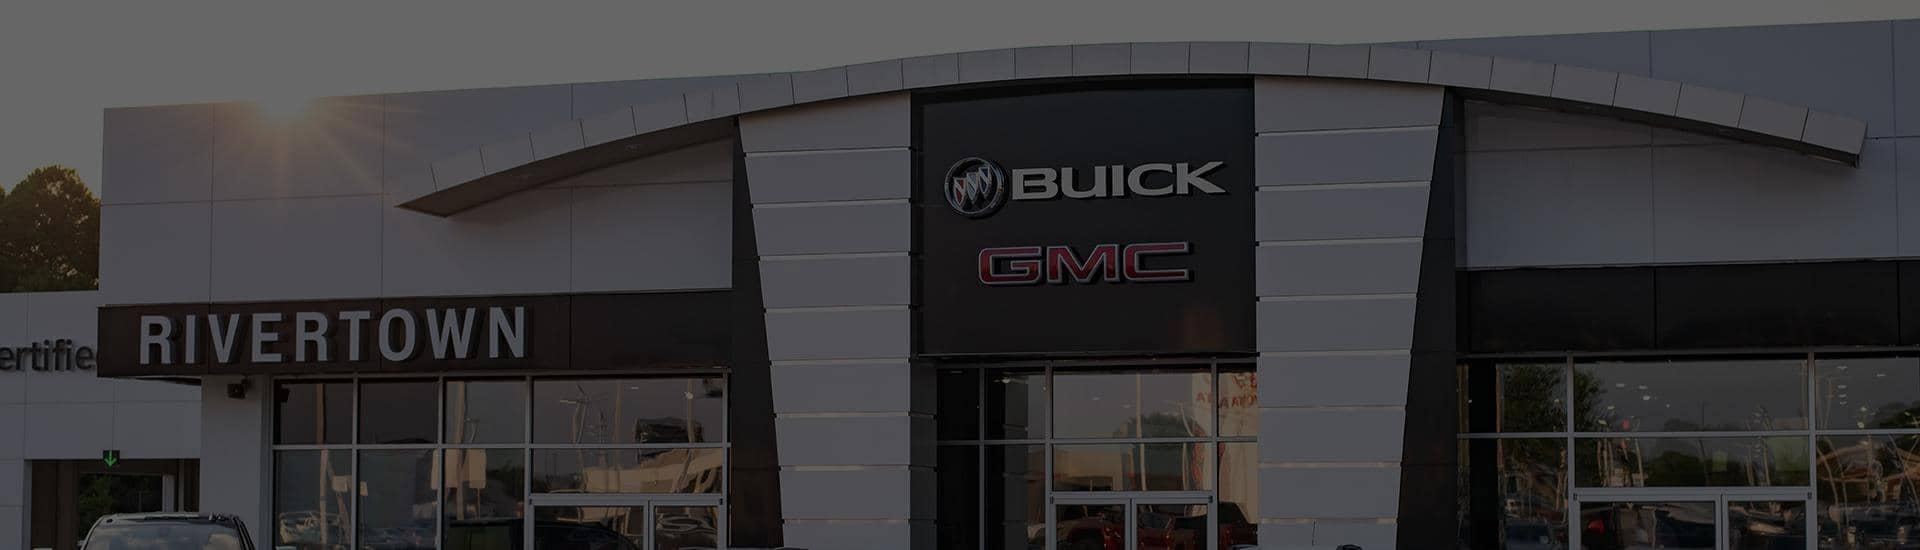 main entrance to Rivertown Buick GMC